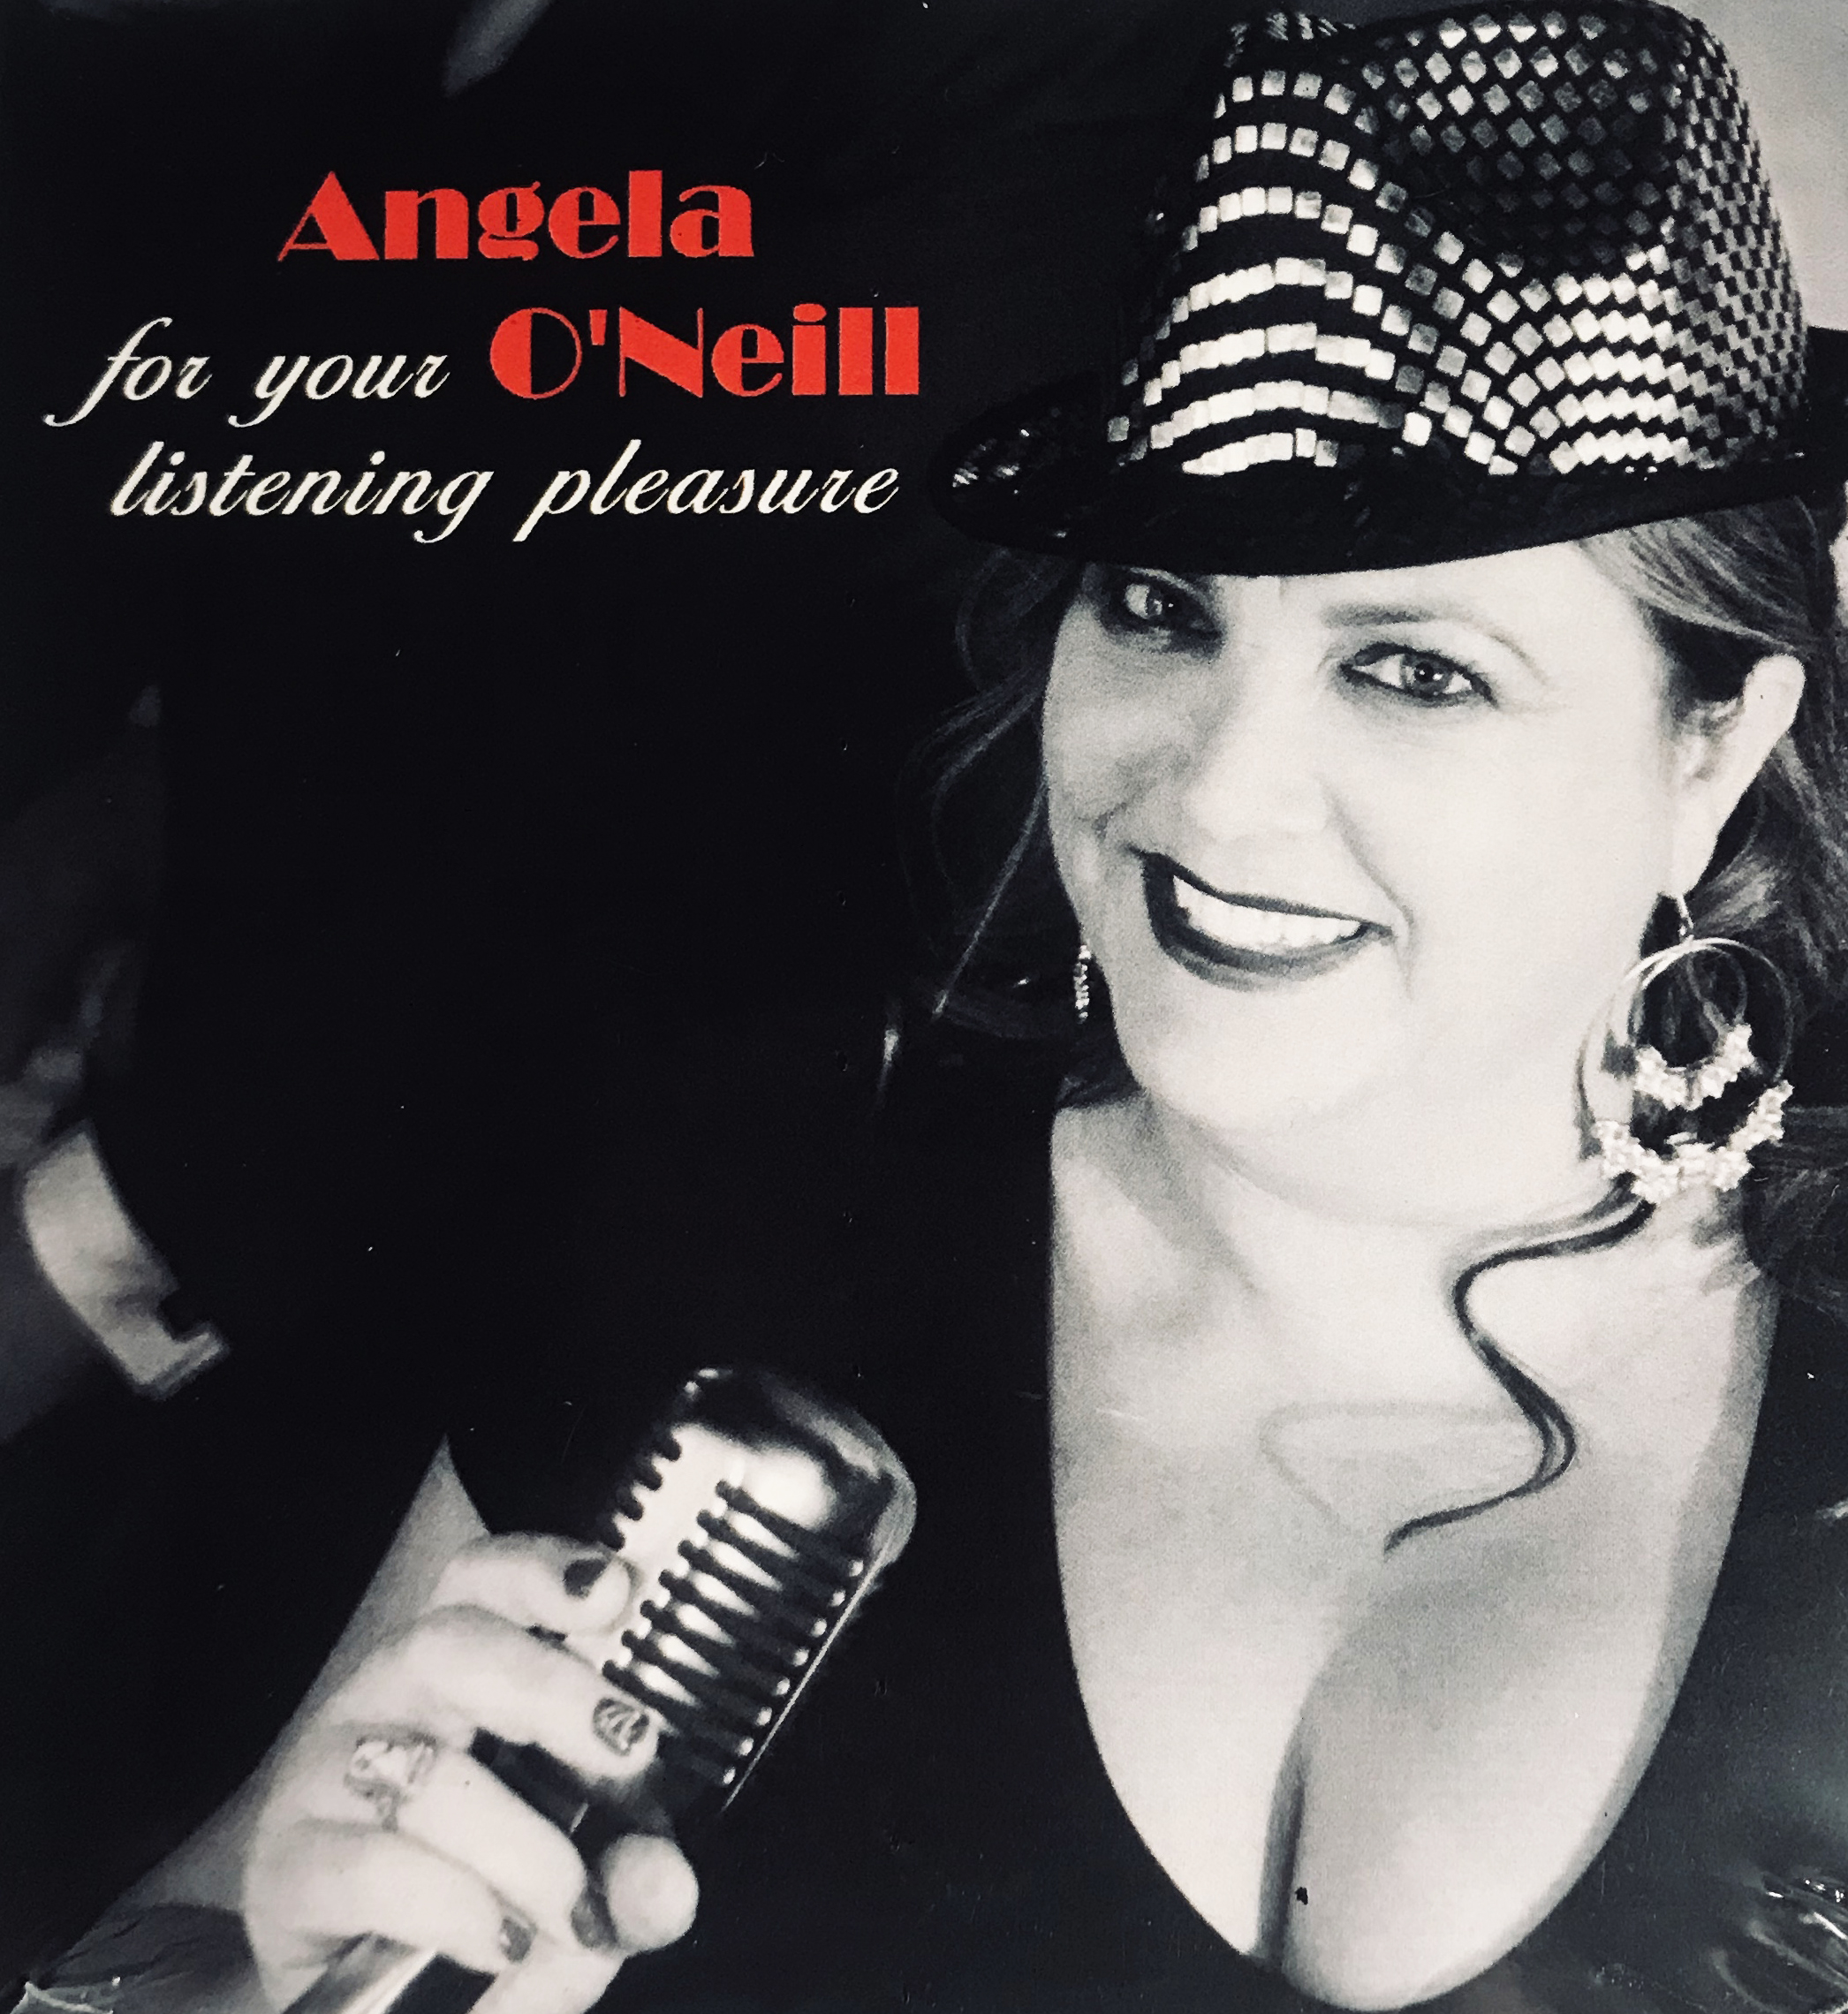 Angela O'Neill and the Outrageous8 - 'For Your Listening Pleasure' CDAlbum Review by Greg Simay, MyBurbank.com